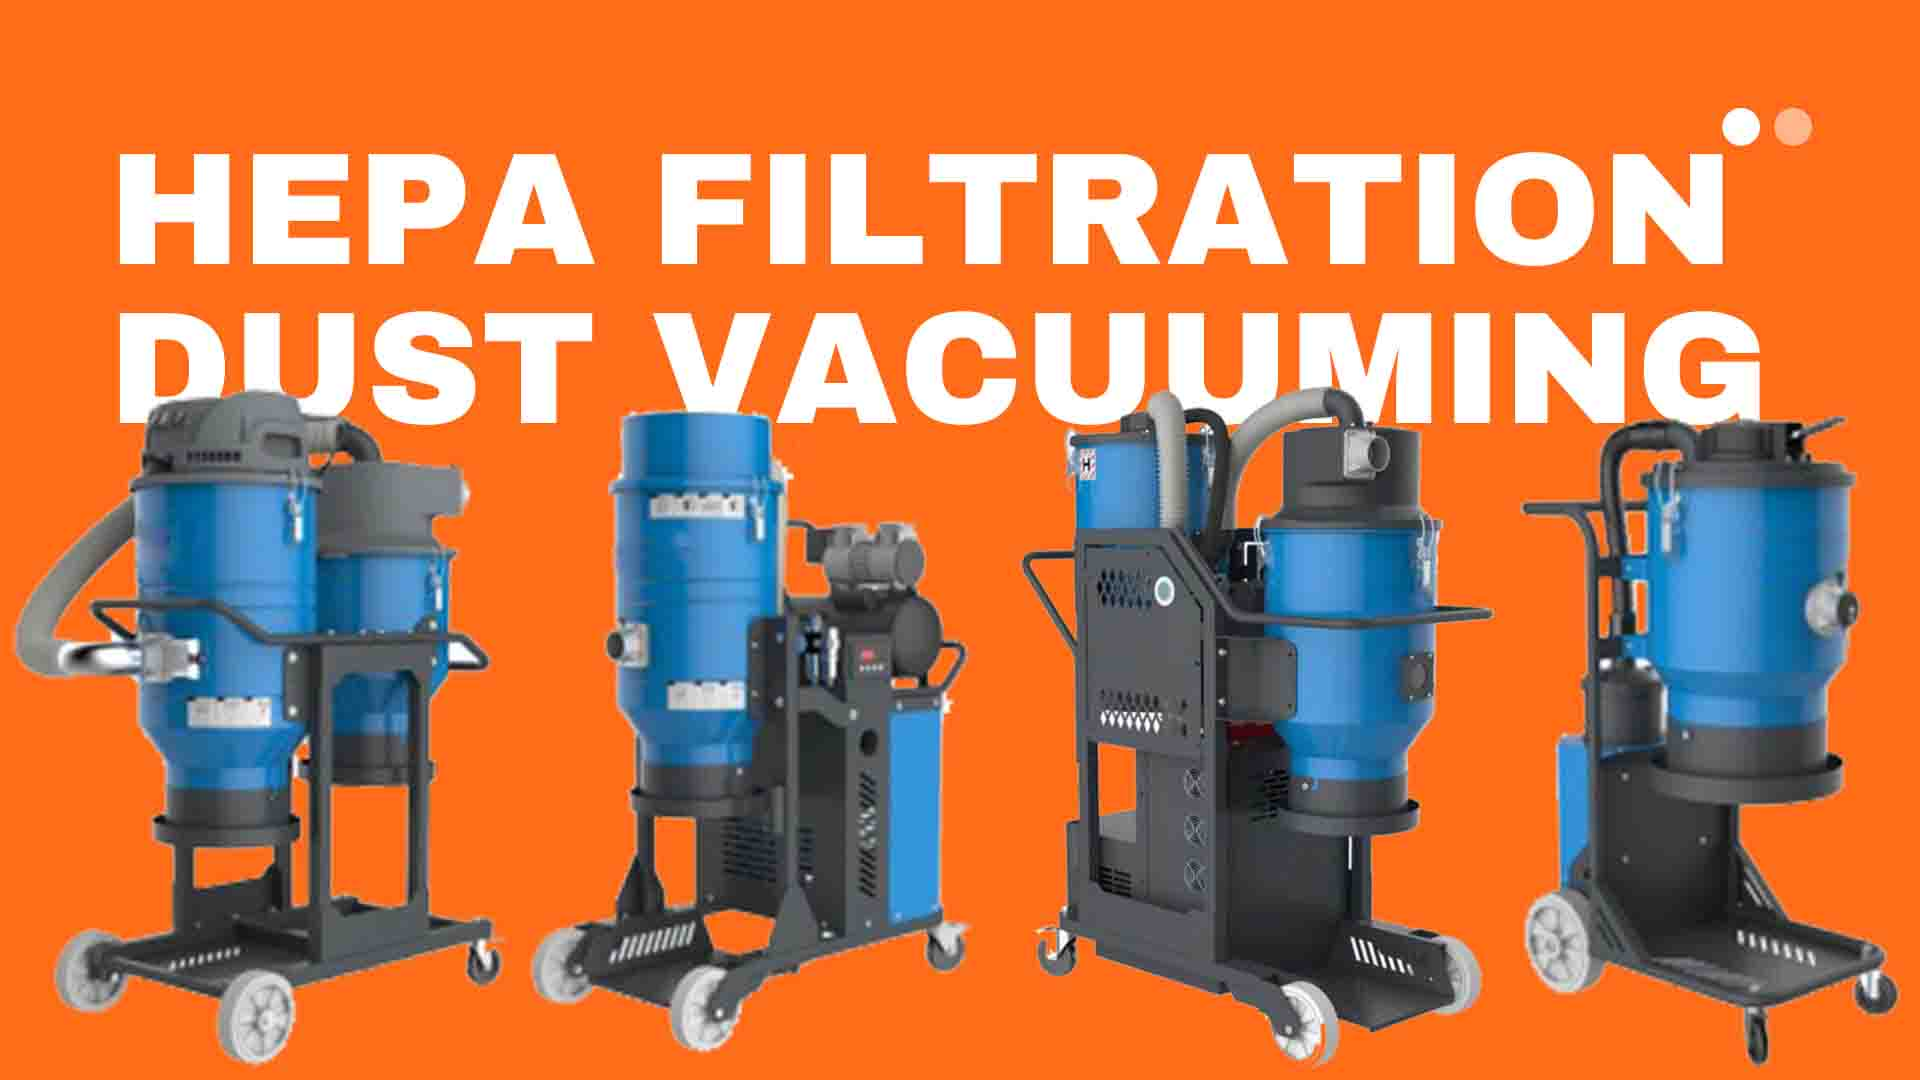 HEPA dust vacuuming